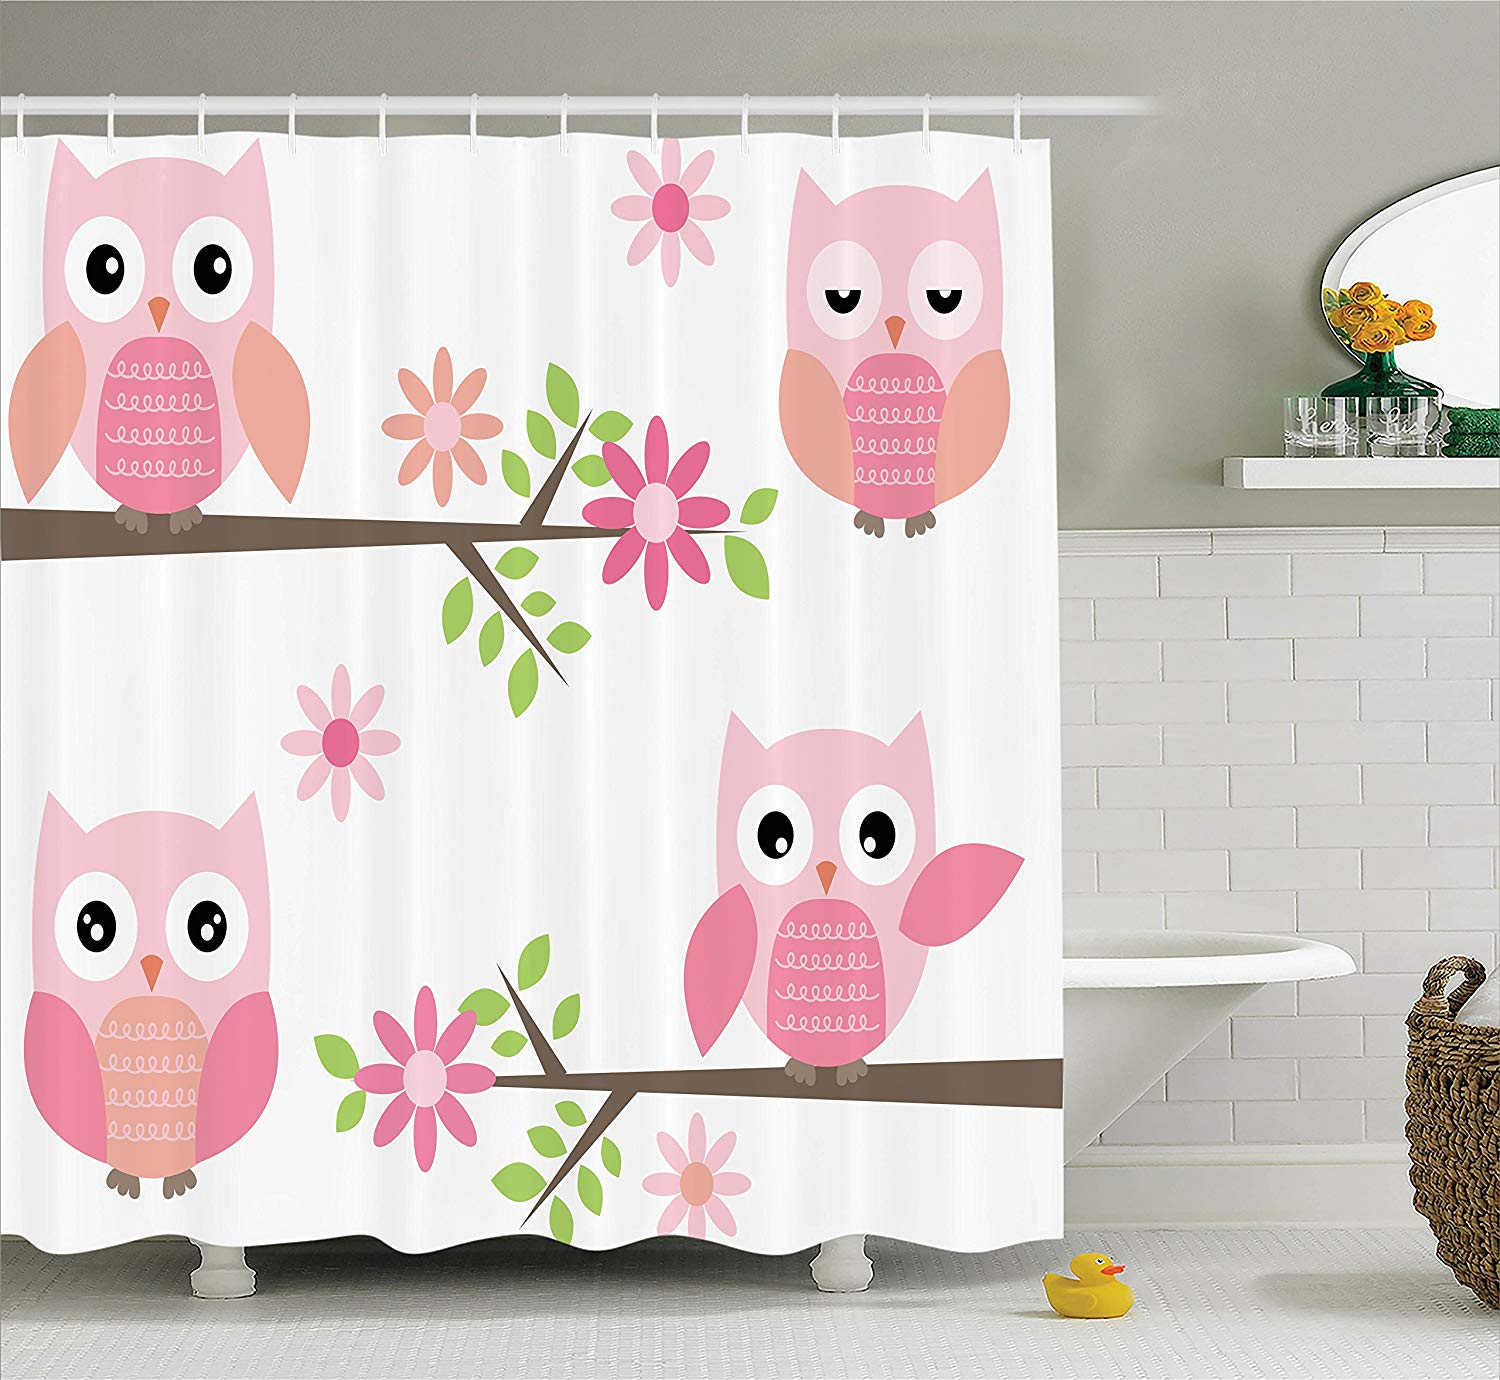 Cute Girly Shower Curtains Owls Shower Curtain Cute Baby Owls Waving In The Floral Tree Springtime Artful Girly Design Print Bathroom Home Decor In Shower Curtains From Home